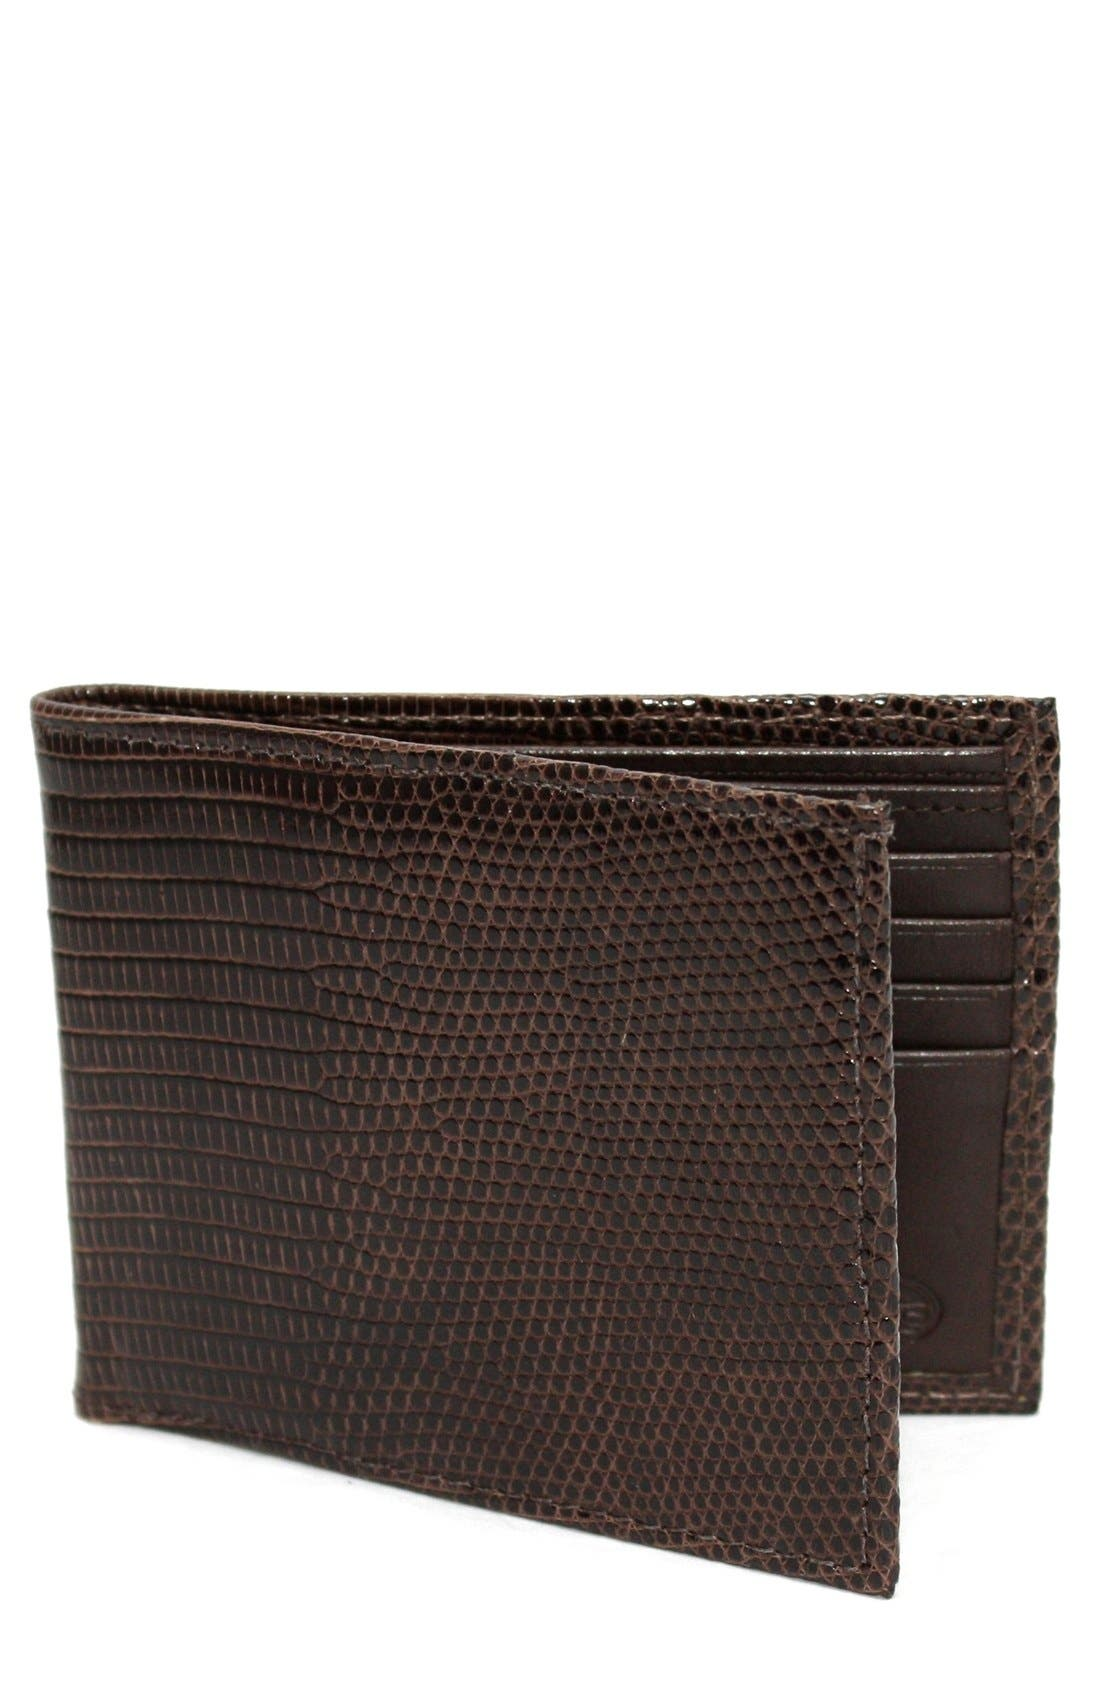 Main Image - Torino Belts Genuine Lizard Wallet